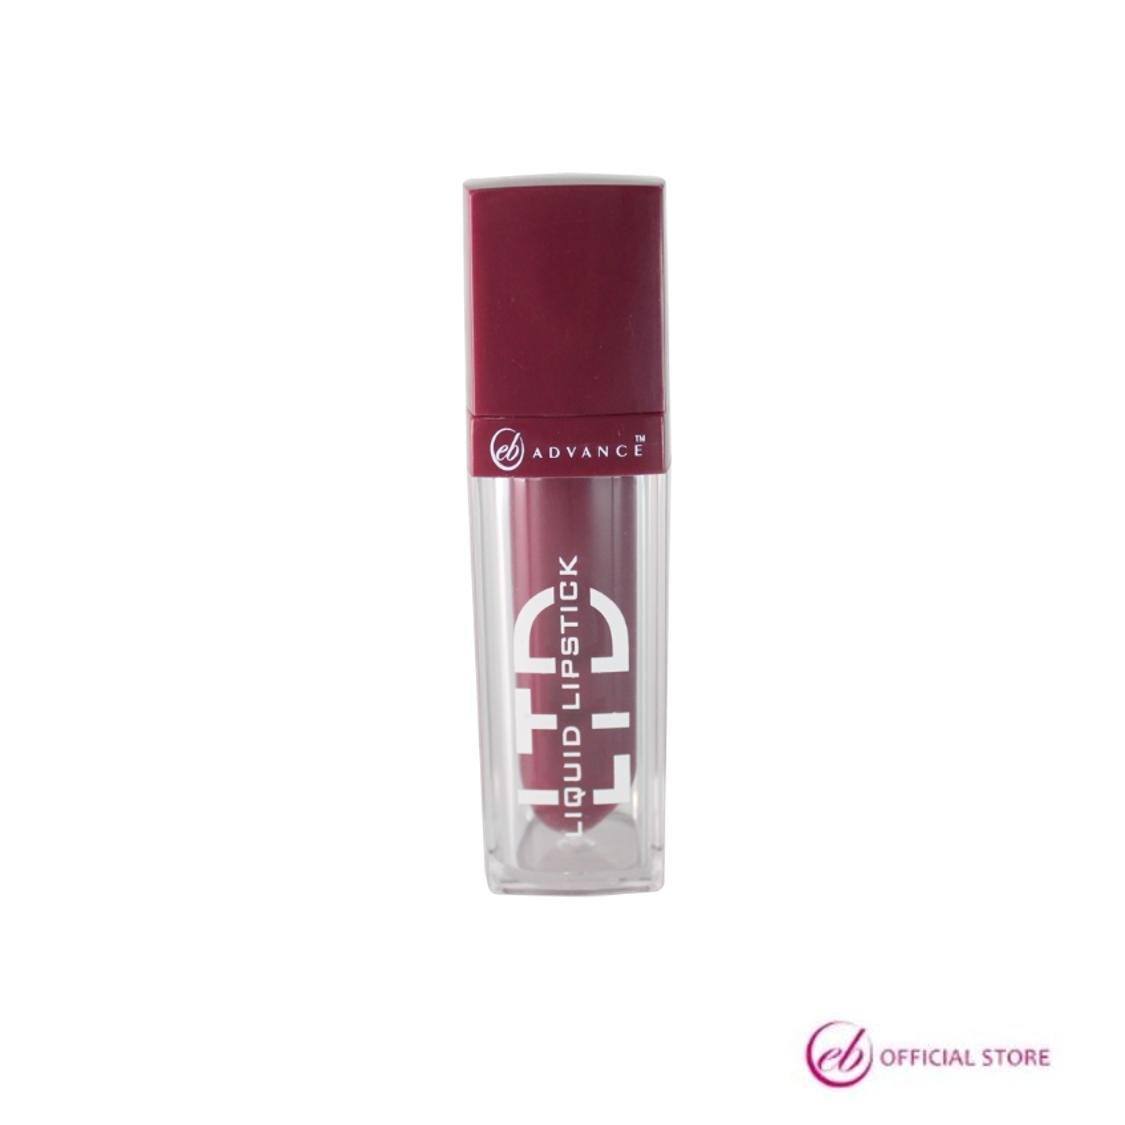 EB Advance LTD Liquid Lipstick Philippines